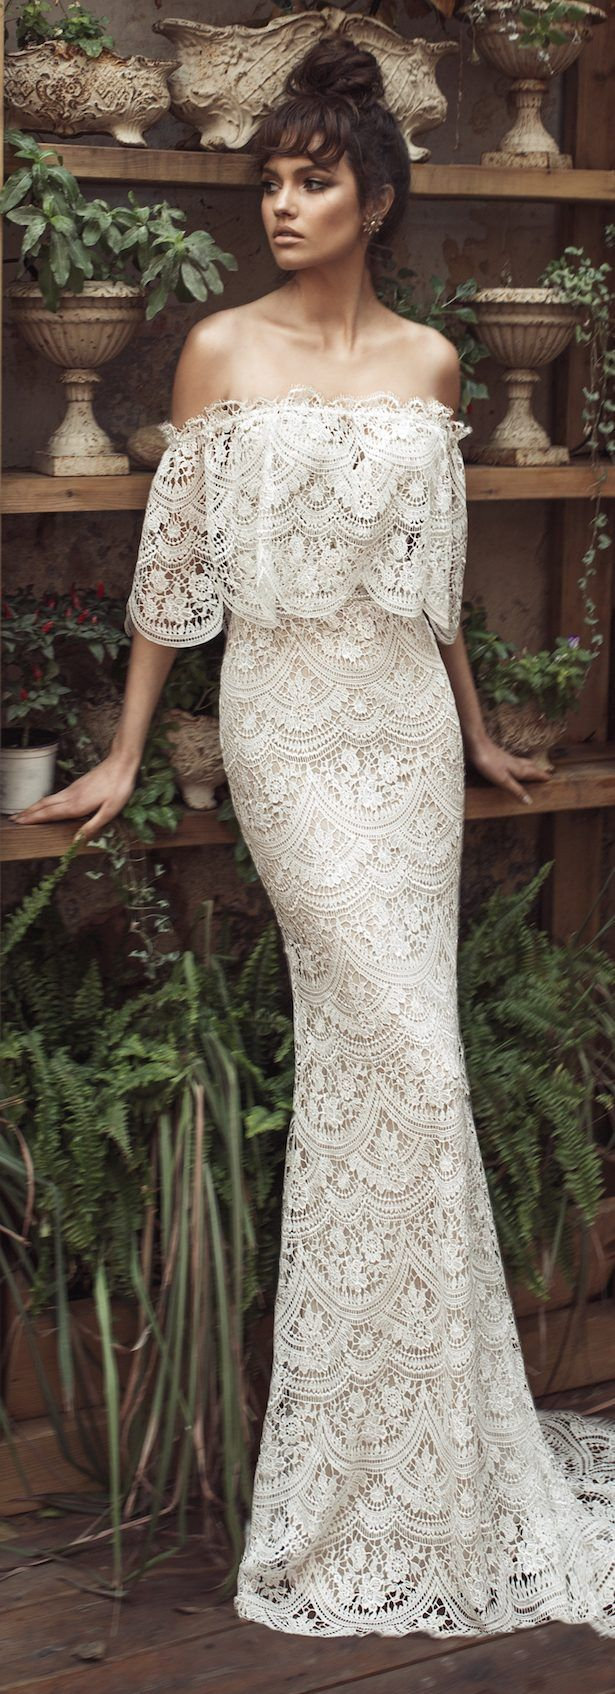 Bridal trends non strapless wedding dresses fashion weddings